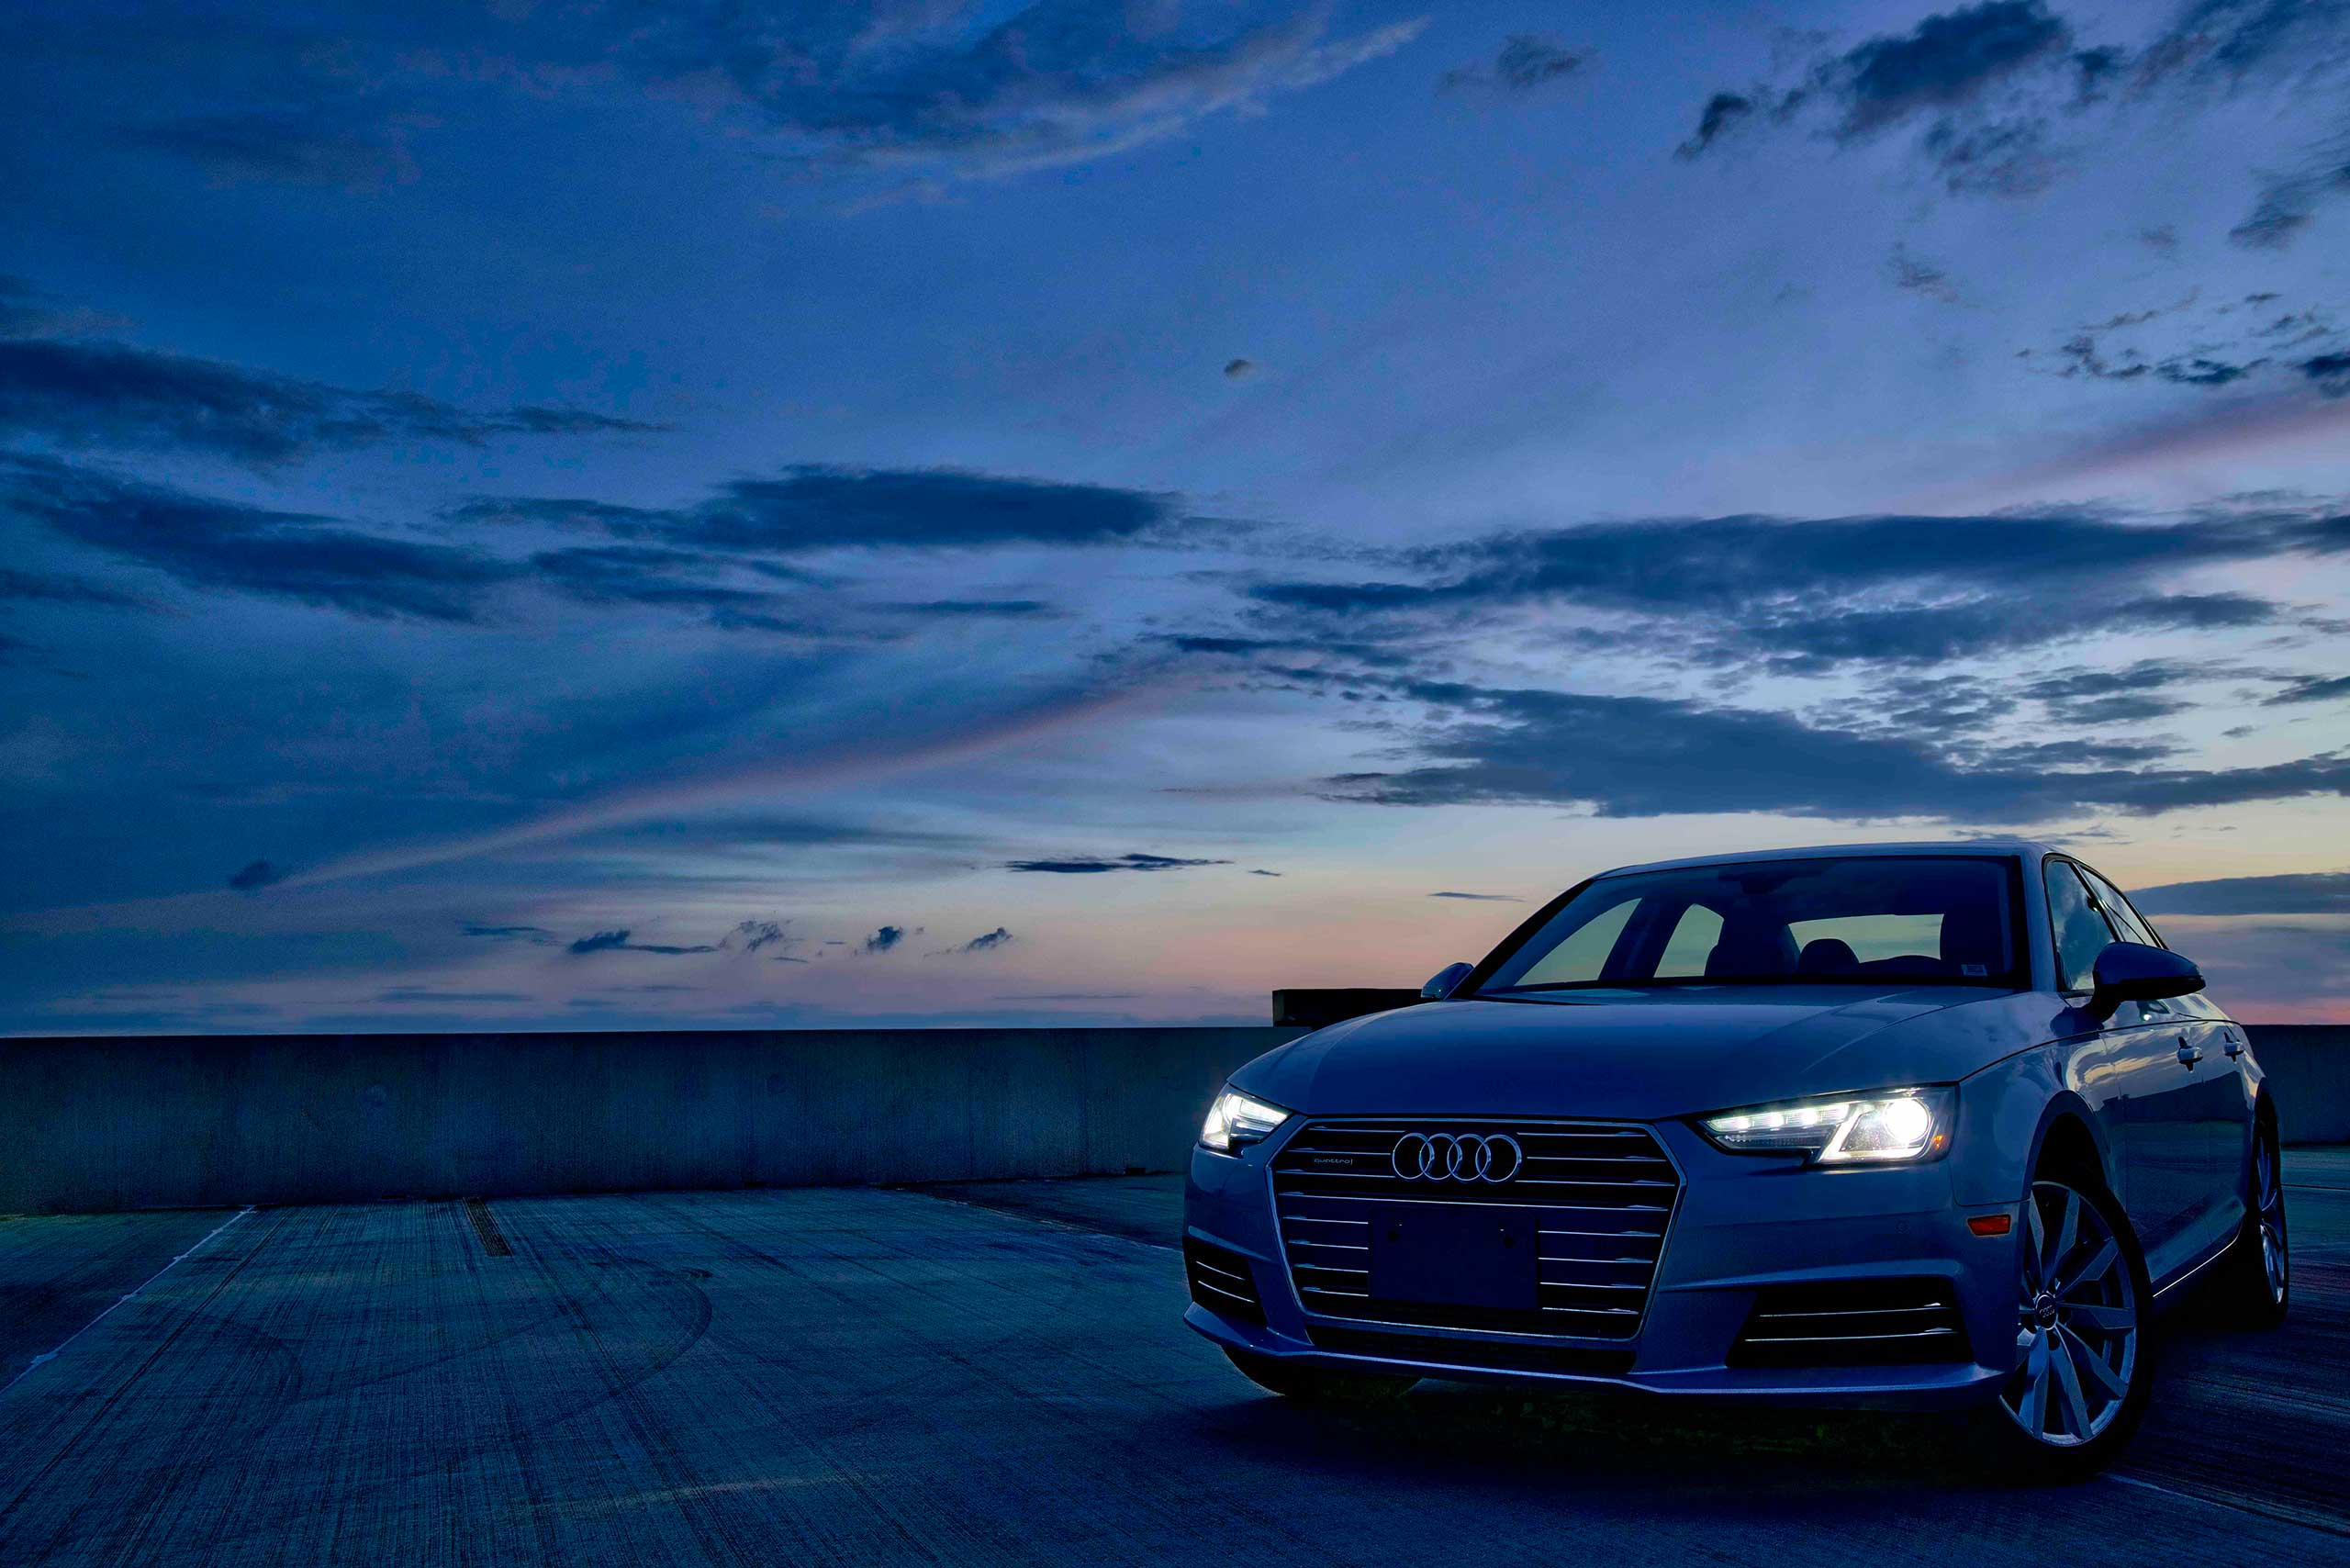 Silvercar Audi in the early morning